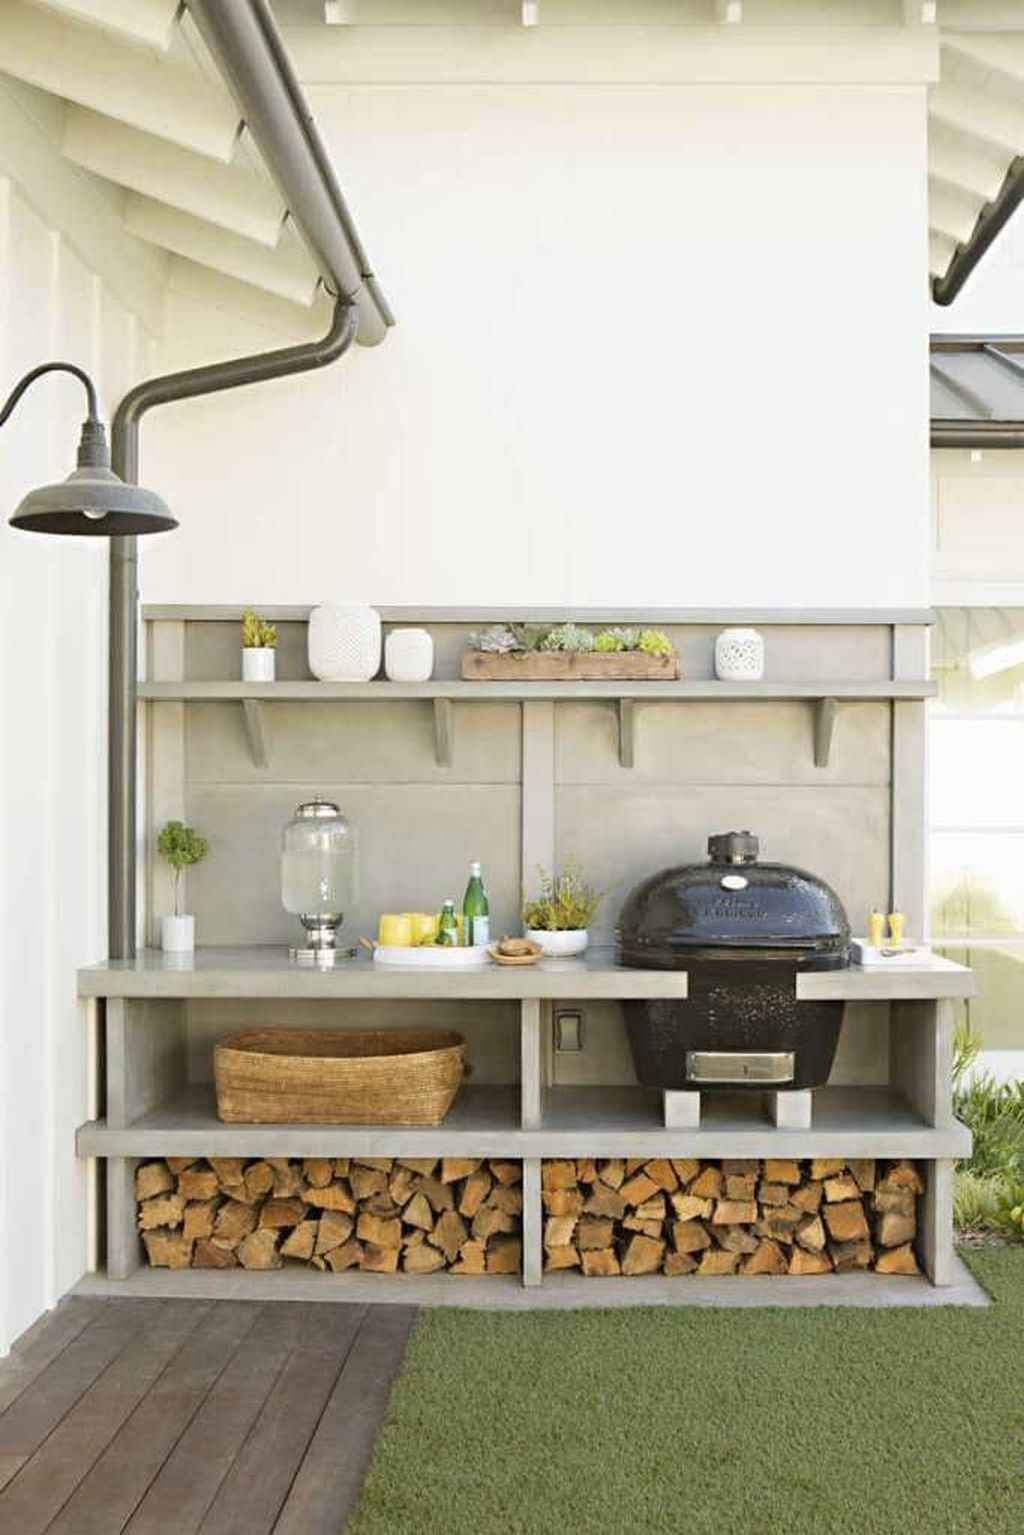 85 Fresh And Easy Summer Container Garden Flowers Ideas Small Outdoor Kitchen Design Small Outdoor Kitchens Diy Outdoor Kitchen